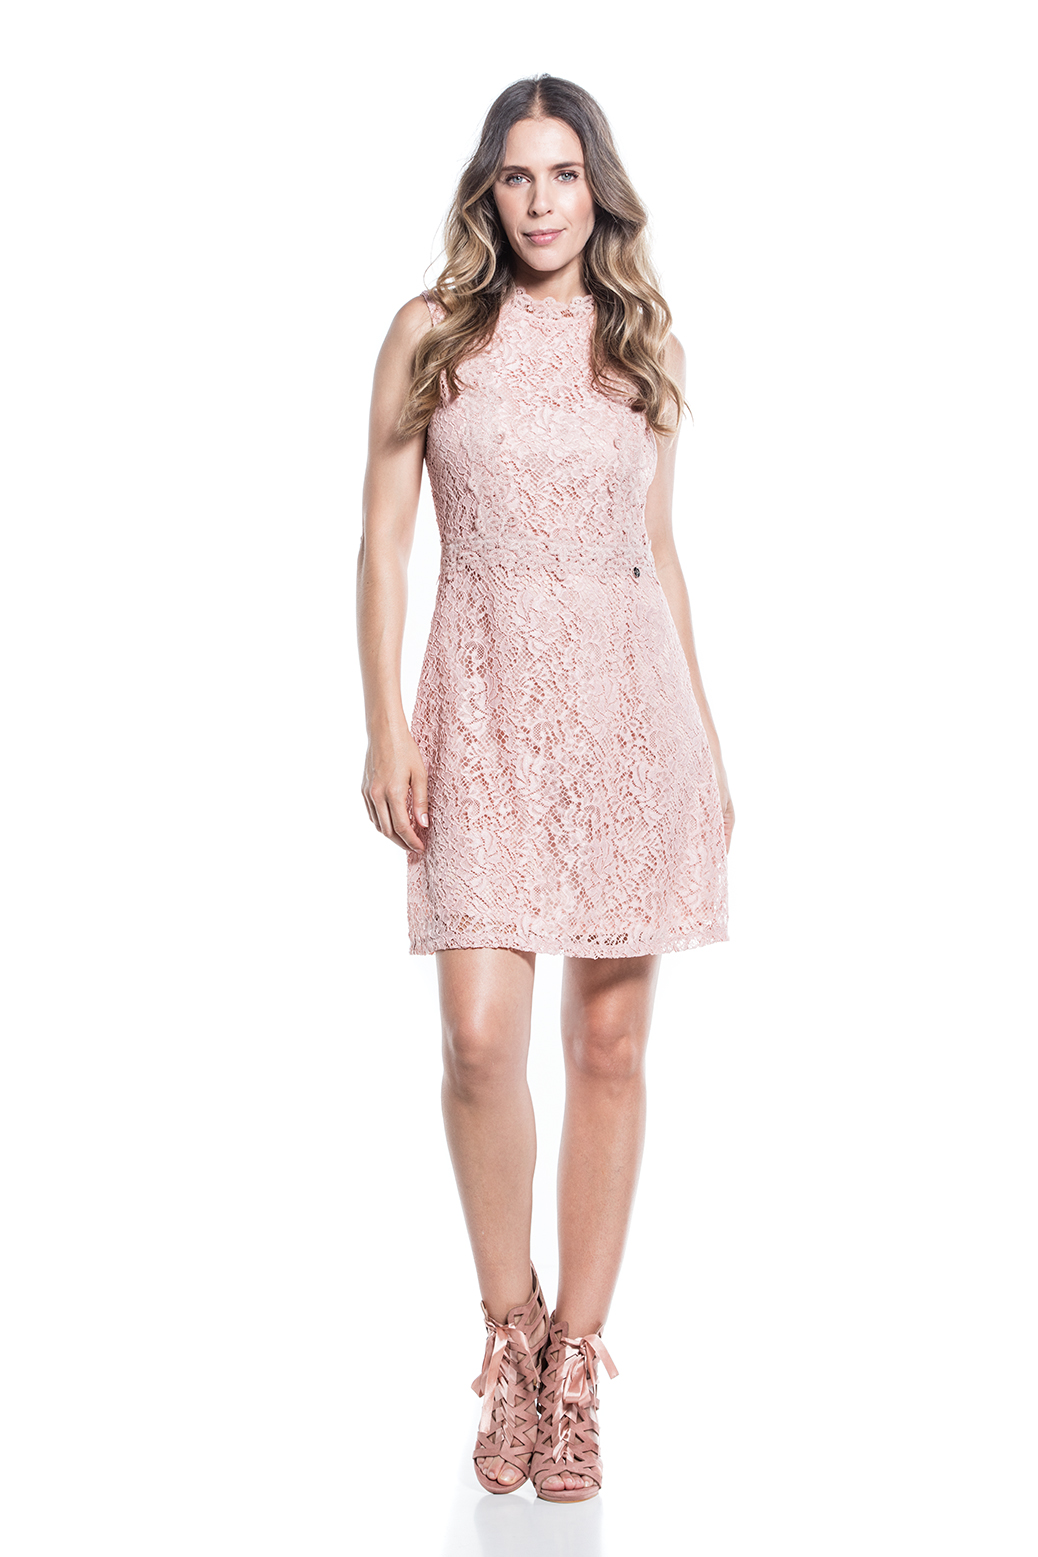 Structured dress with lace details